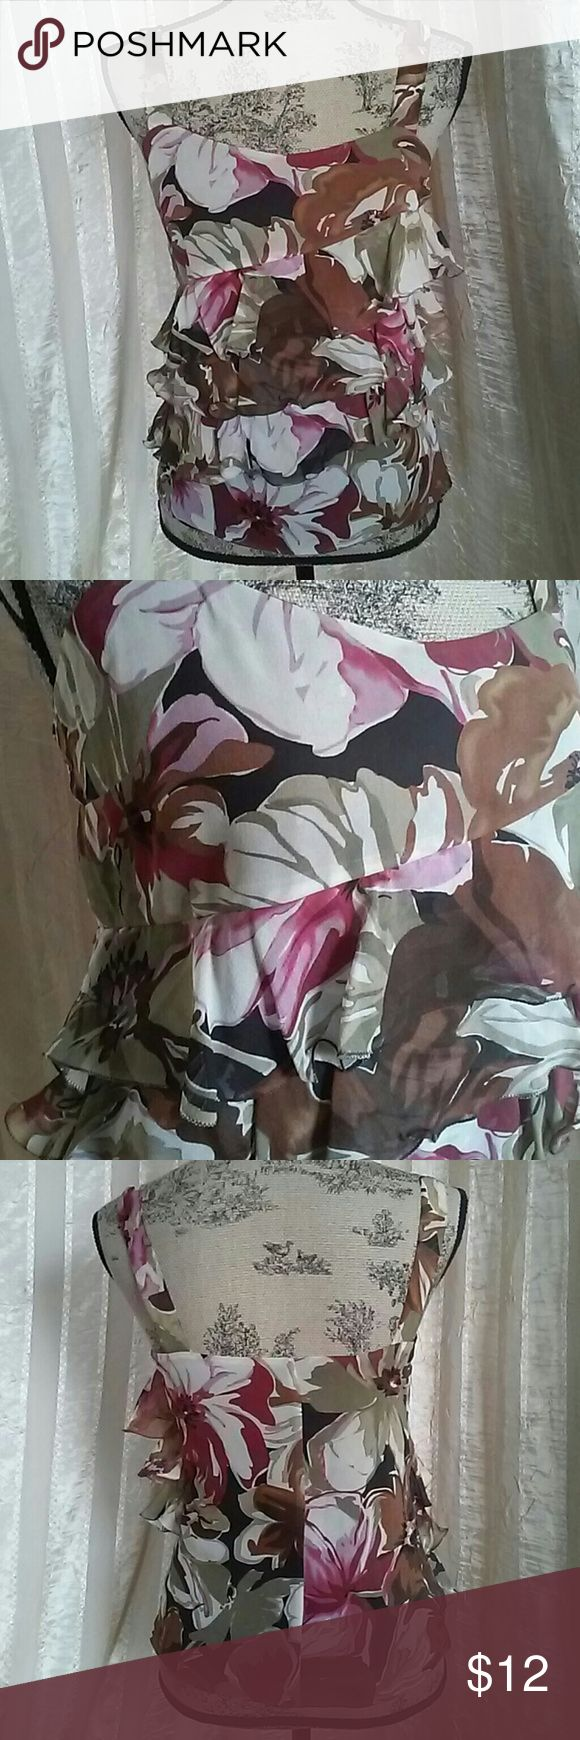 """Express Women's Silk Floral Tank Blouse Top Women's Silk top By Express Size XS Measures about 17"""" across chest  About 23"""" in length  Small hole in ruffle by zipper, it got stuck one time Not noticeable due to floral design Overall in great pre-owned condition Express Tops"""